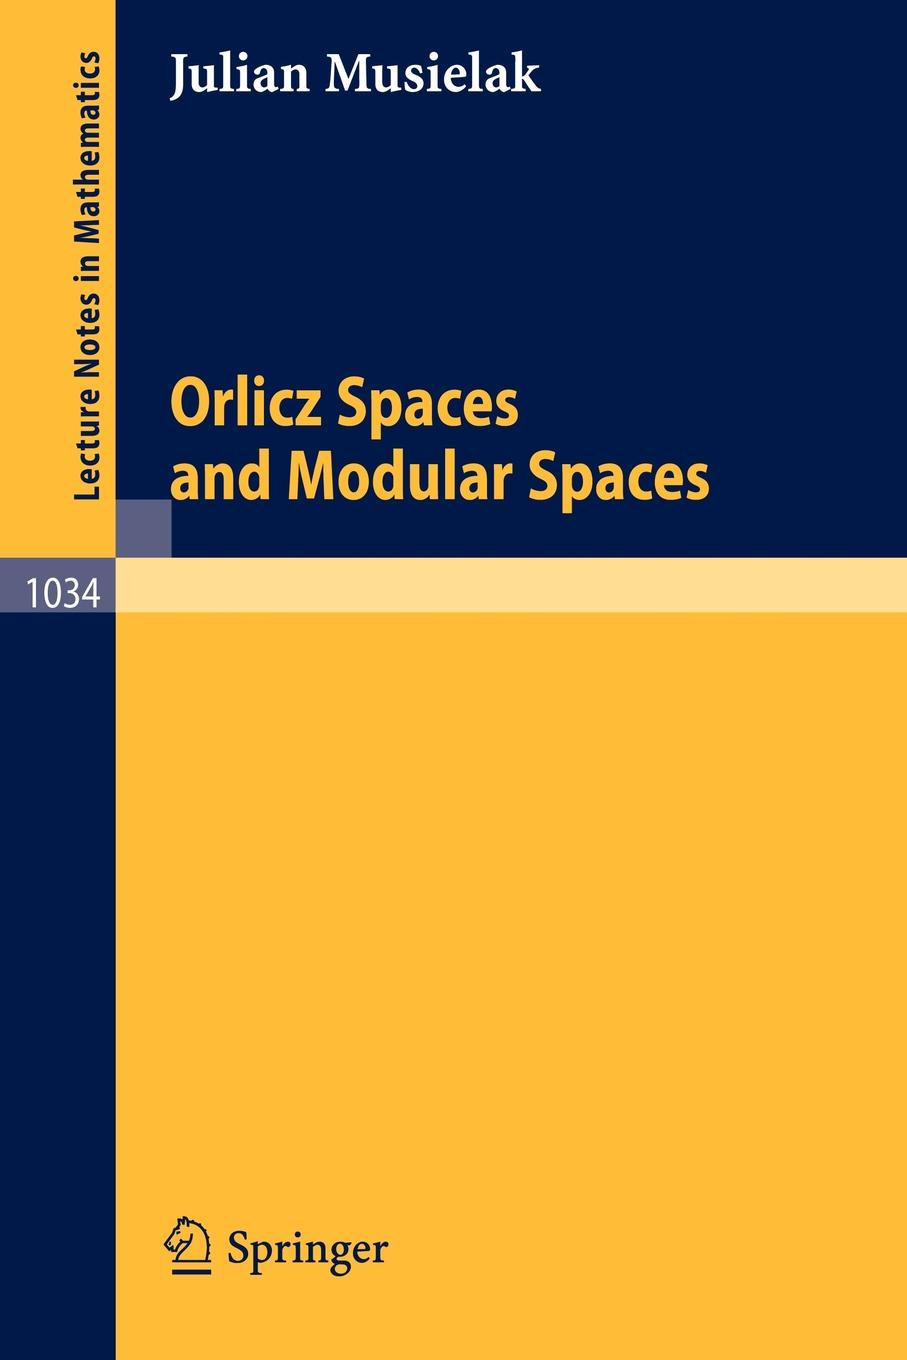 J. Musielak Orlicz Spaces and Modular Spaces louis w fry liminal spaces and call for praxis ing